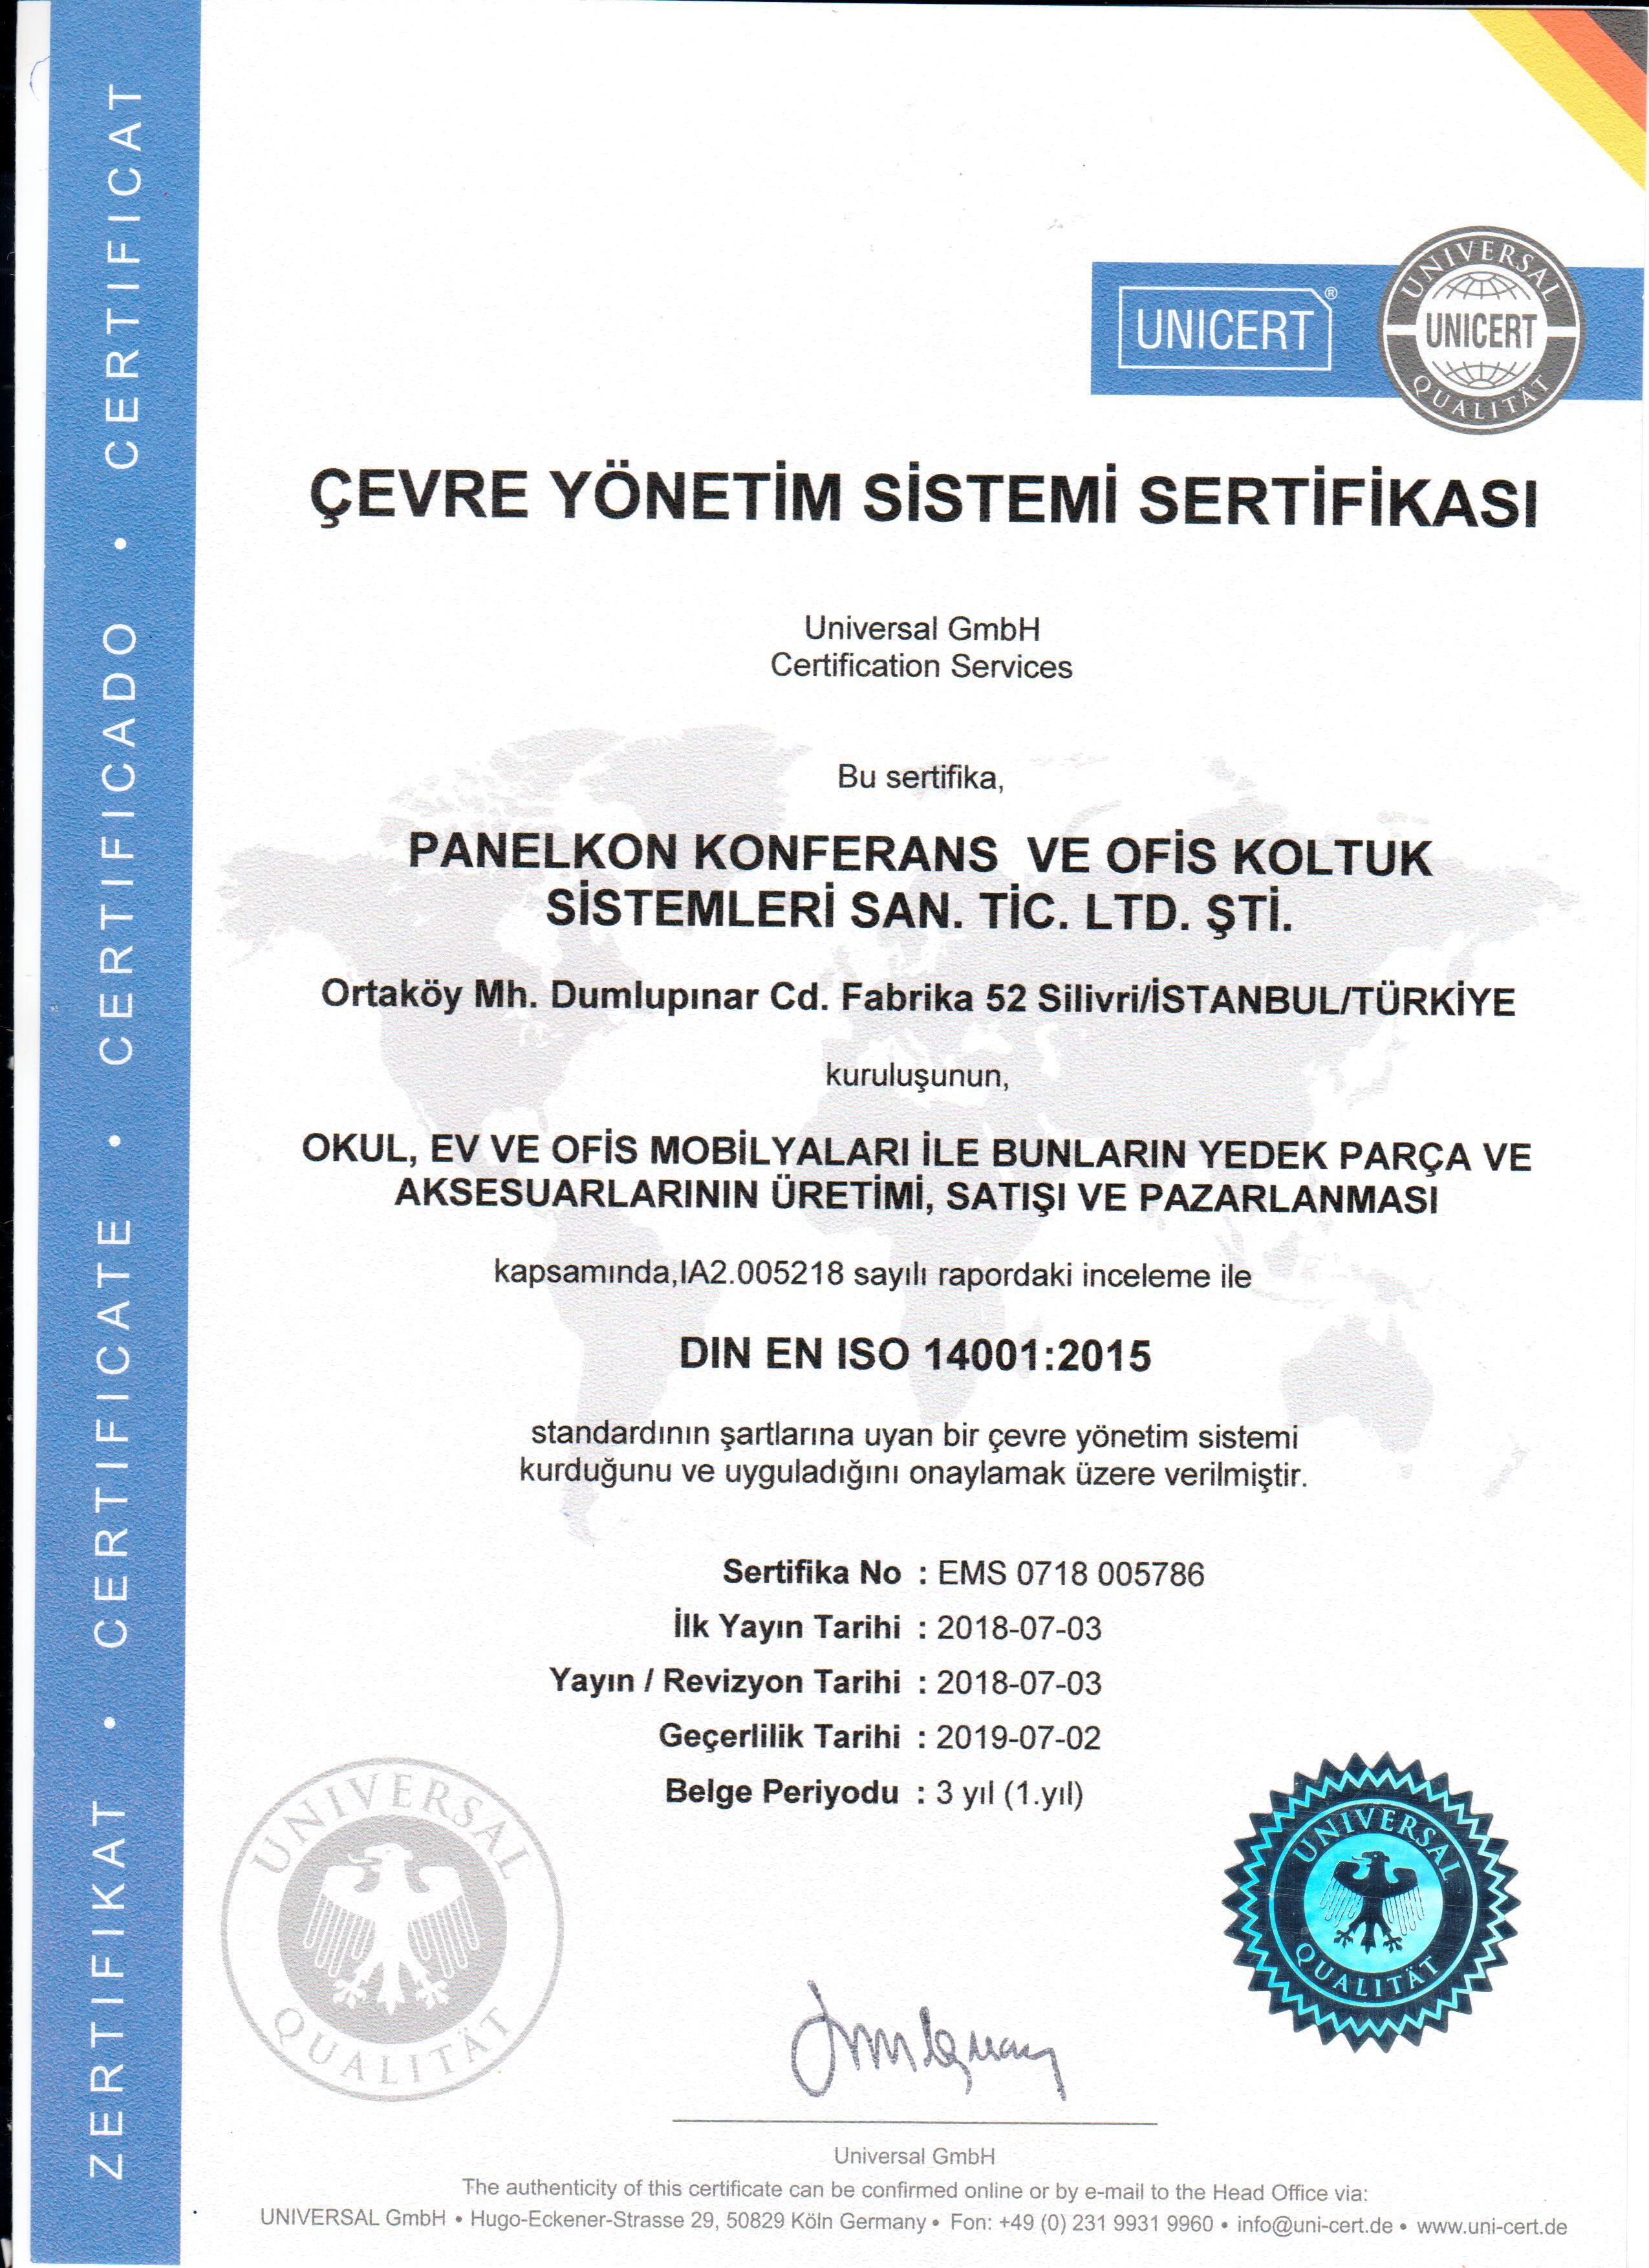 İSO 14001